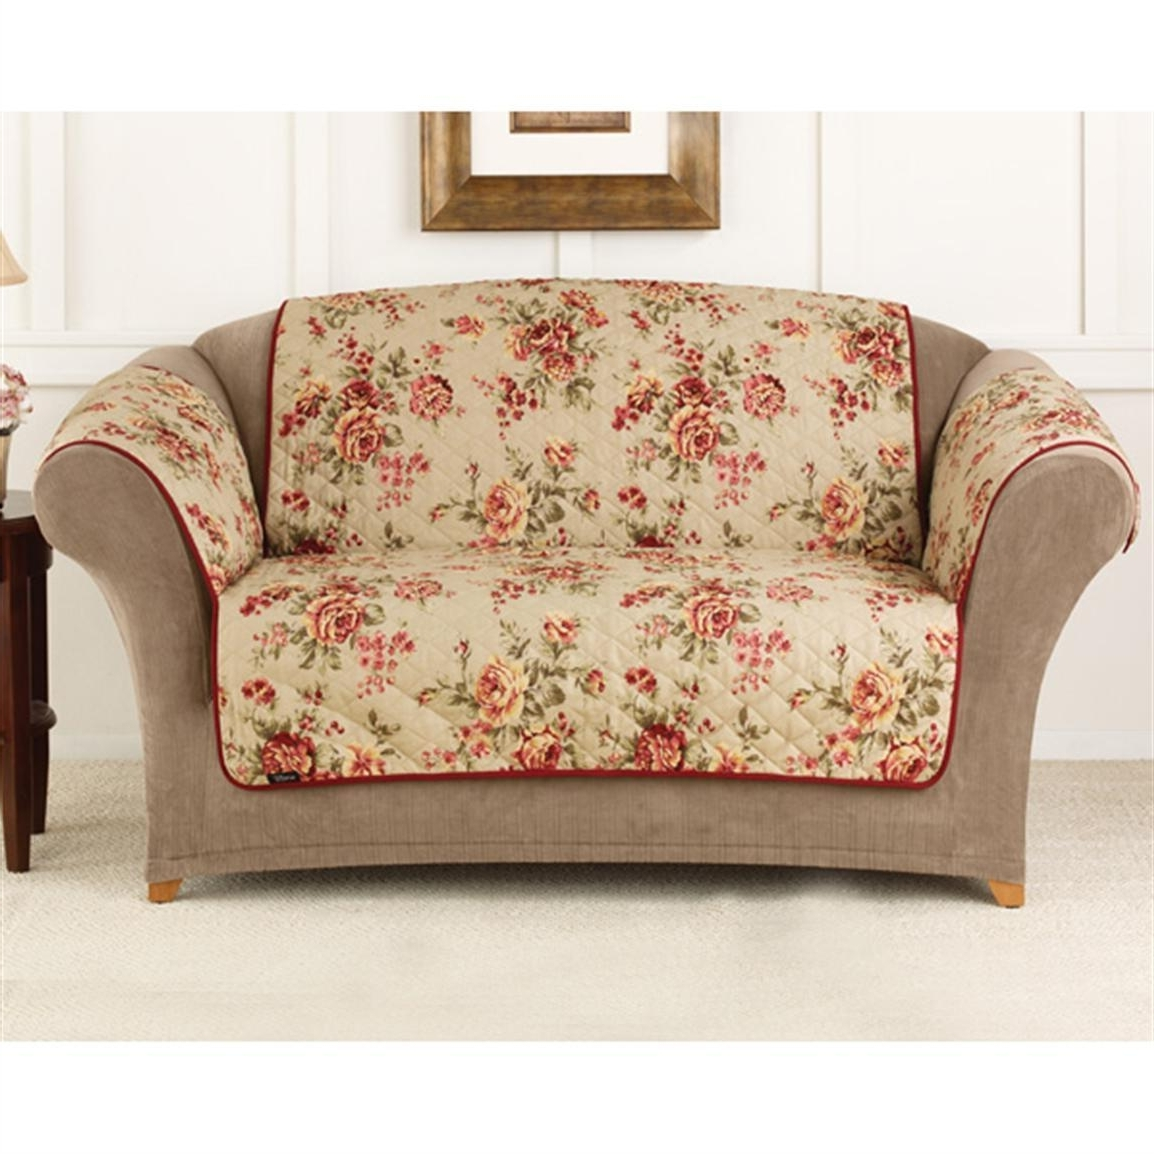 Recent Chintz Covered Sofas Pertaining To Furniture : Covers For Sofas And Couch Sure Fit Lexington Floral (View 14 of 20)